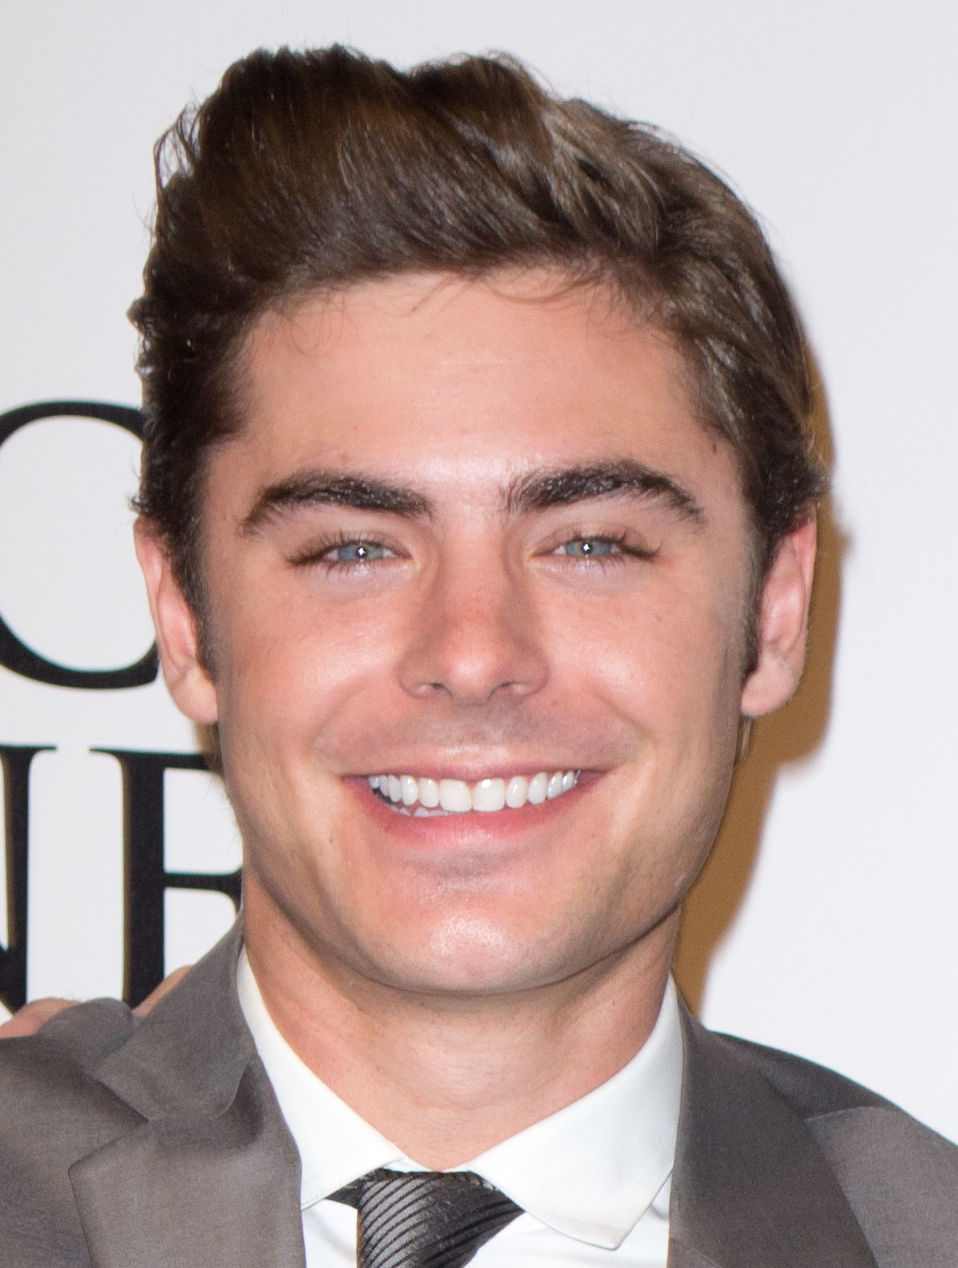 Photo of Zac Efron: American actor